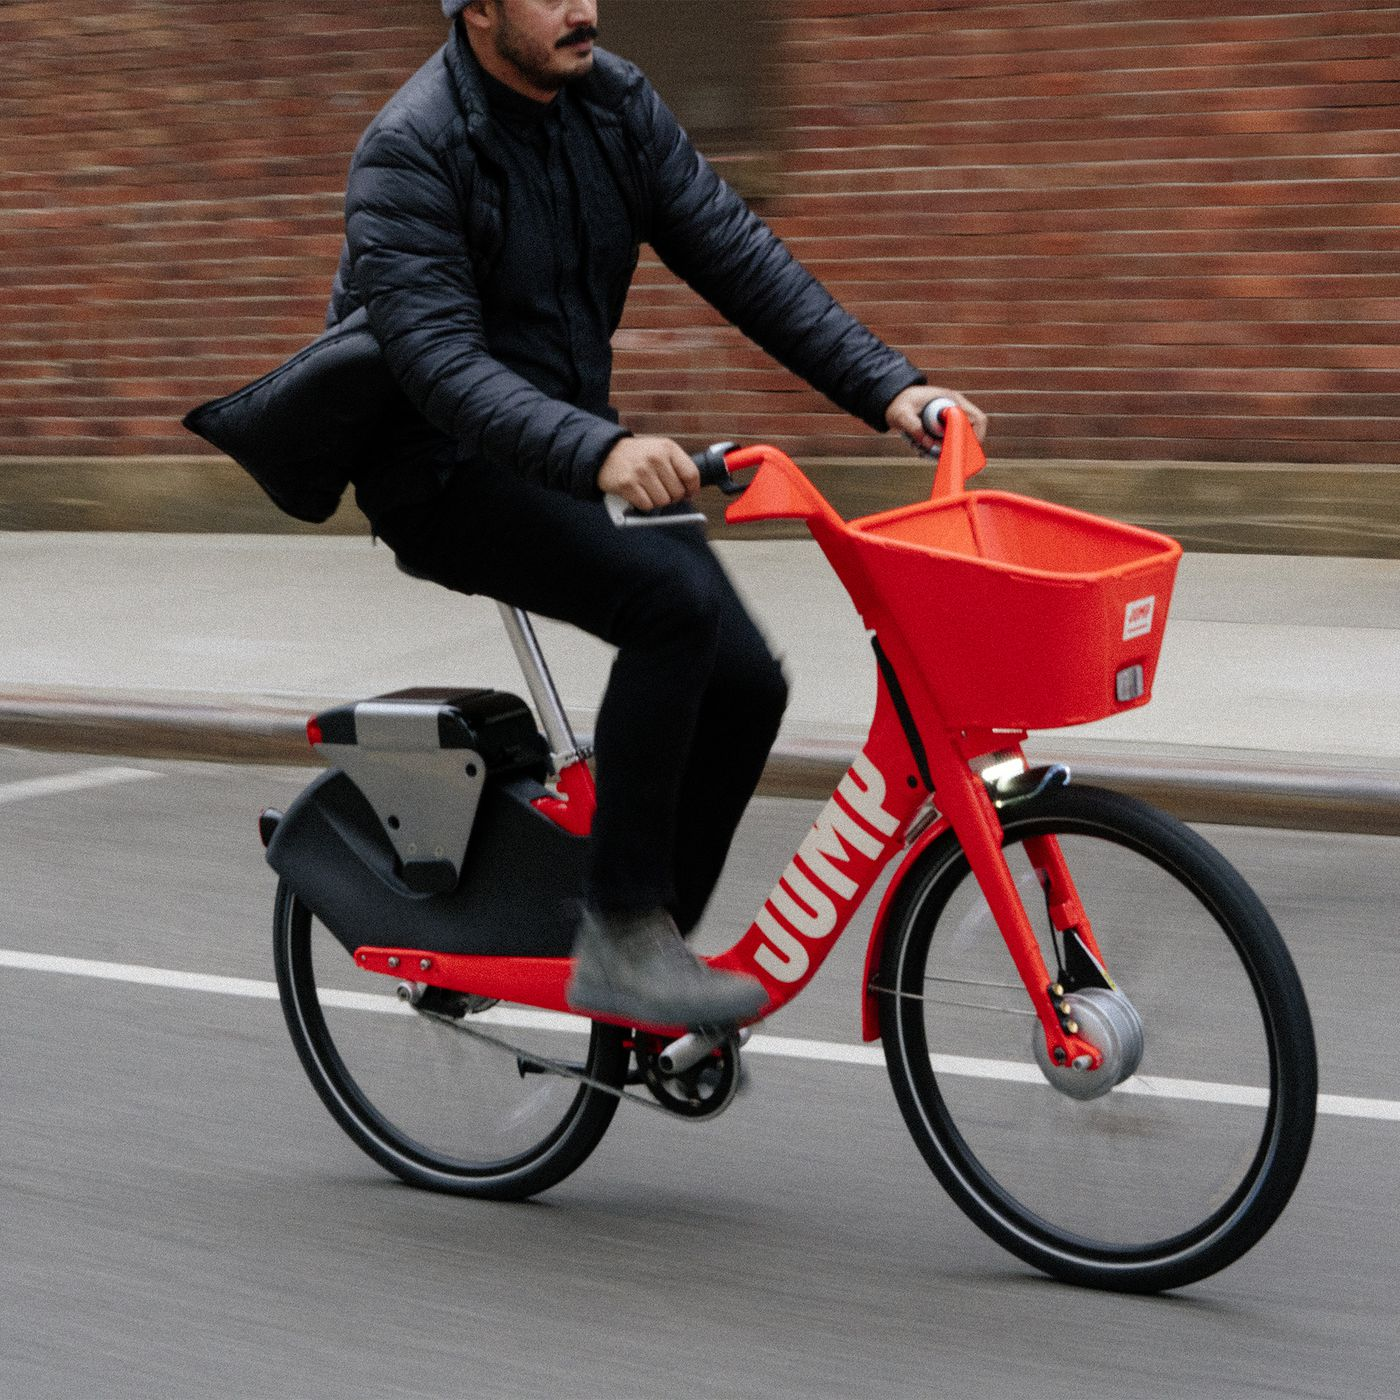 Uber acquires dockless bike-share startup Jump - The Verge